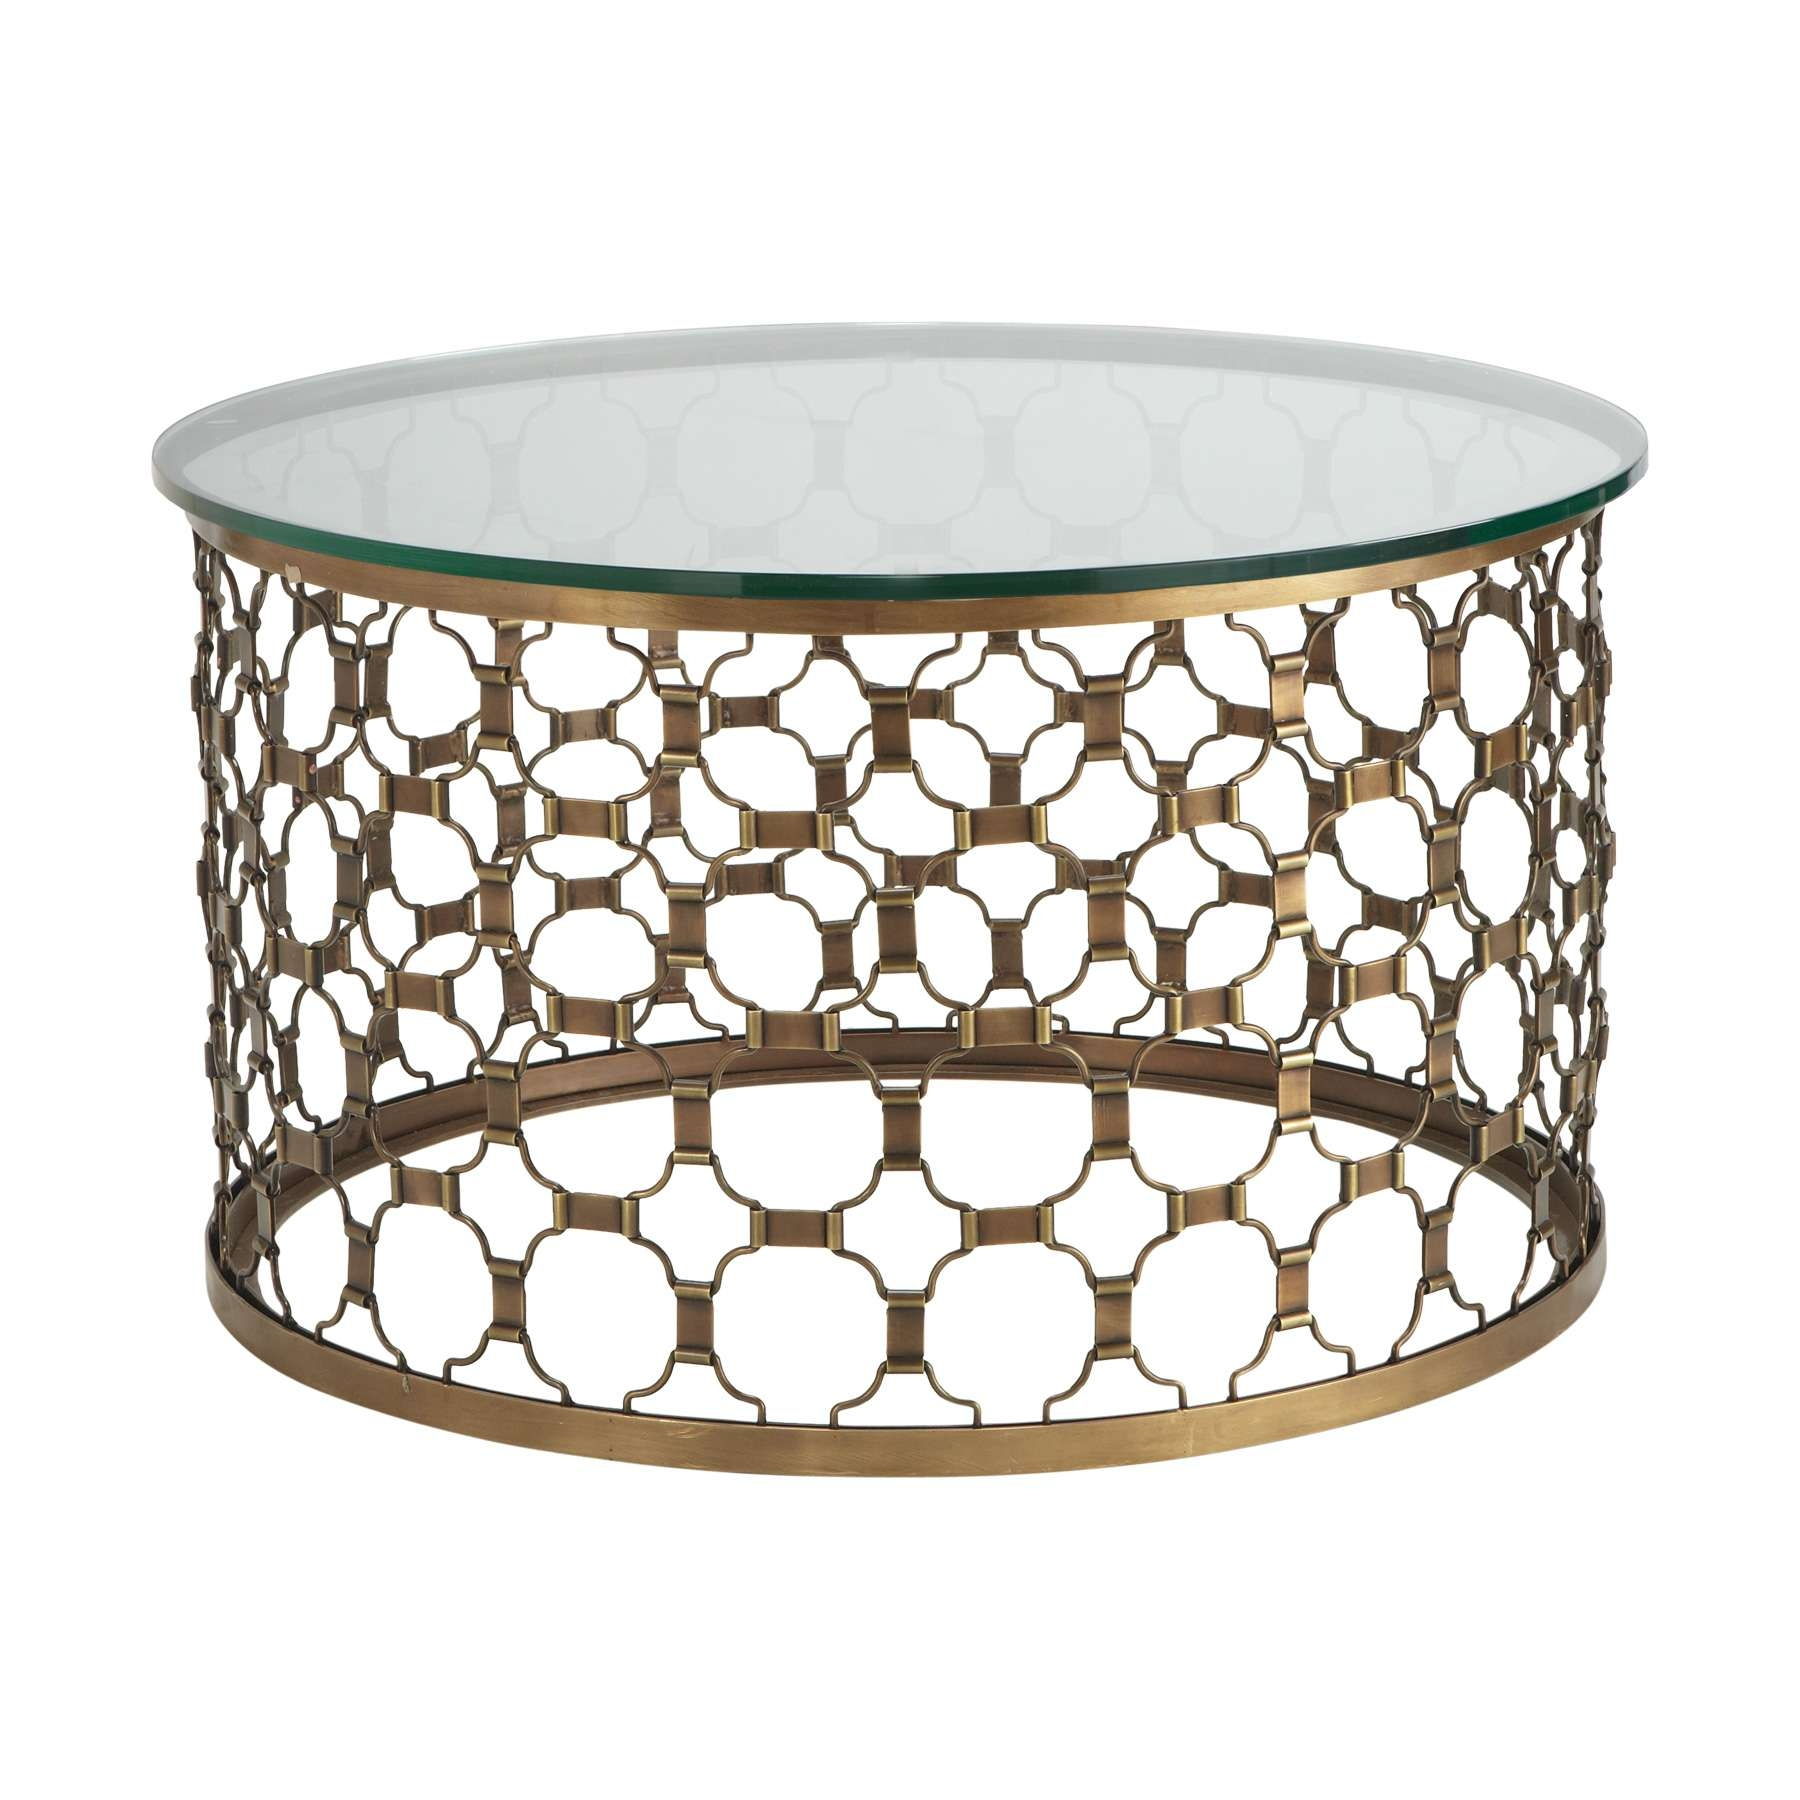 Coffee Tables : Naomi Round Coffee Table Elegant Gold Metal Top Pertaining To Newest Contemporary Round Coffee Tables (View 6 of 20)